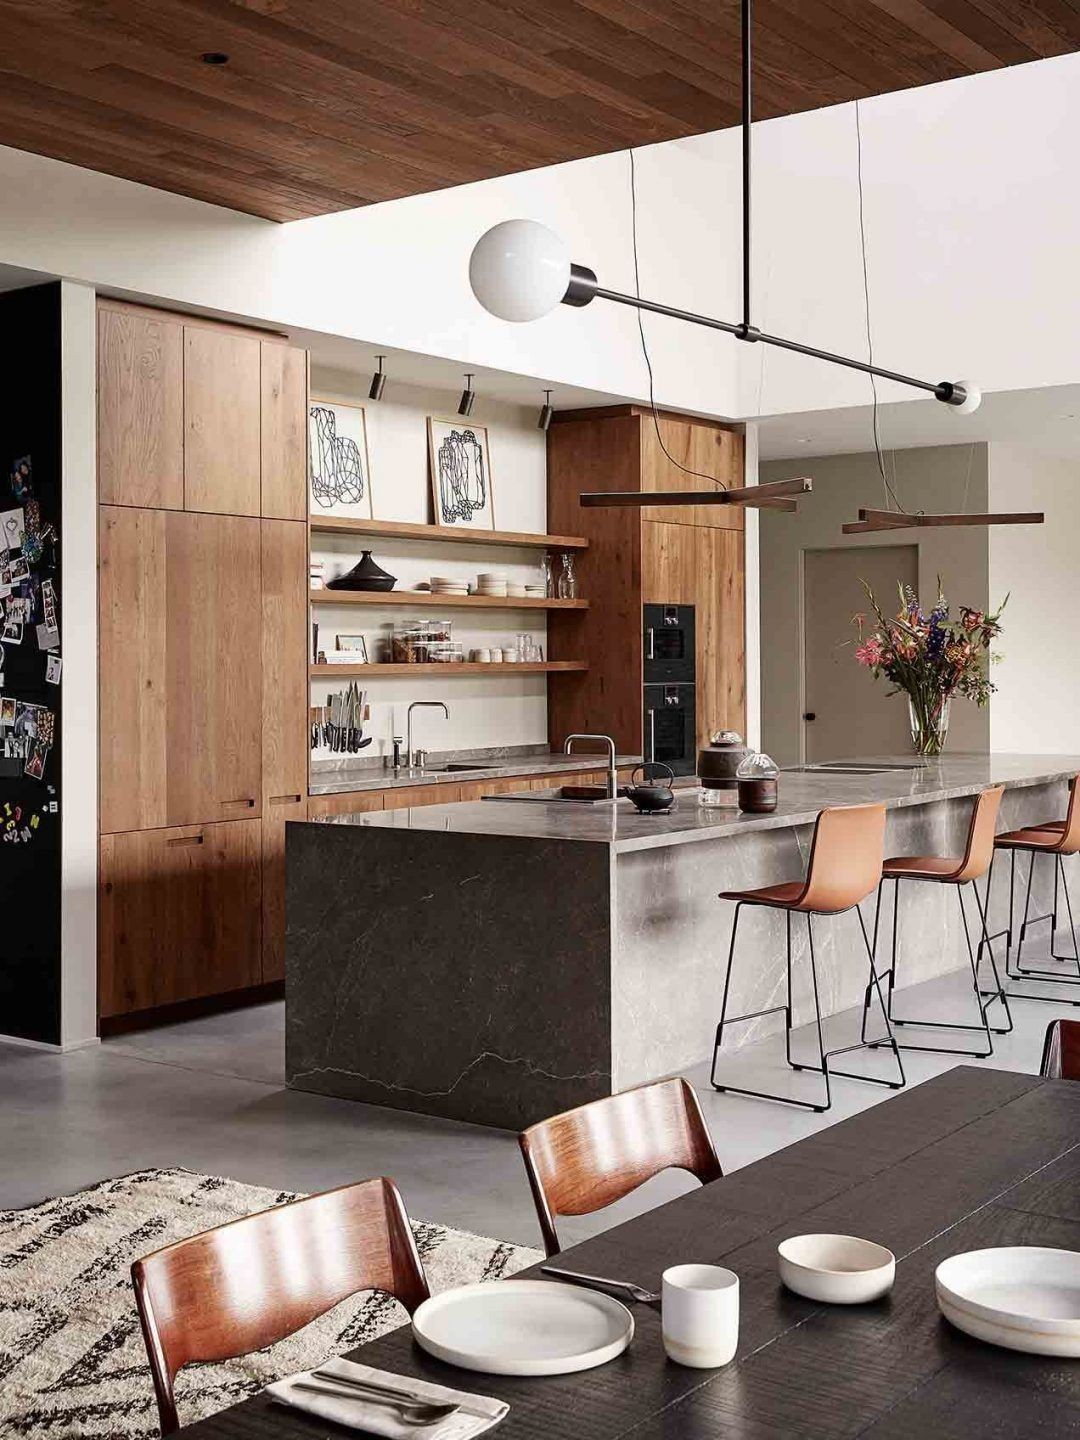 25 Mid Century Modern Kitchen Ideas To Beautify Your Cooking Area - F1F99927C8192Fdf230B39Ce2Fb8E839